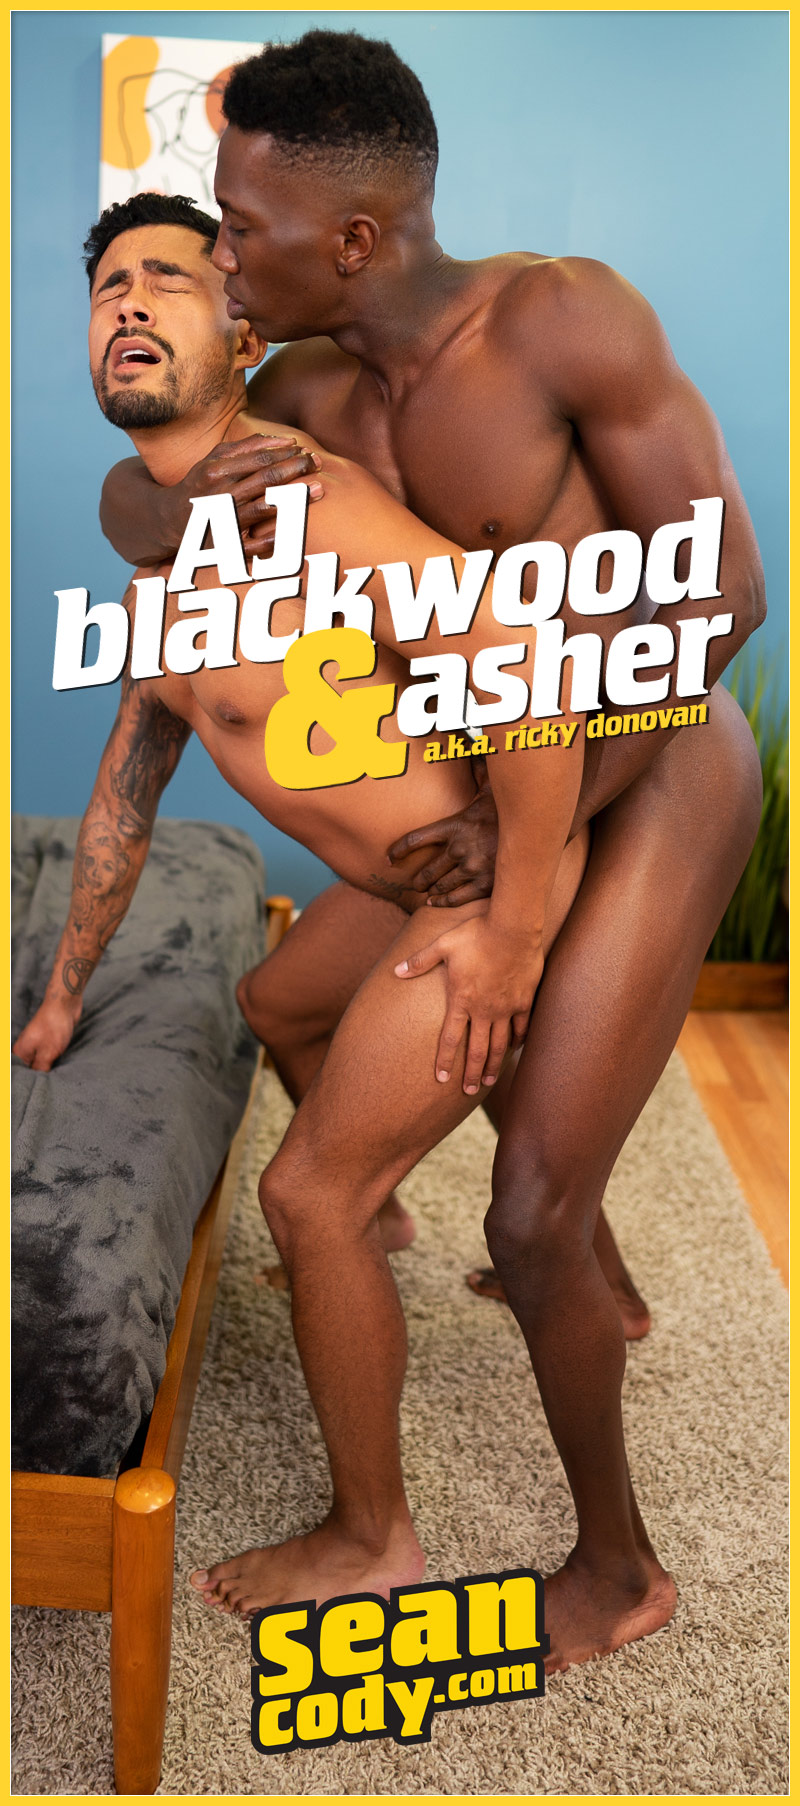 AJ Blackwood Fucks Asher (a.k.a. Ricky Donovan) at SeanCody